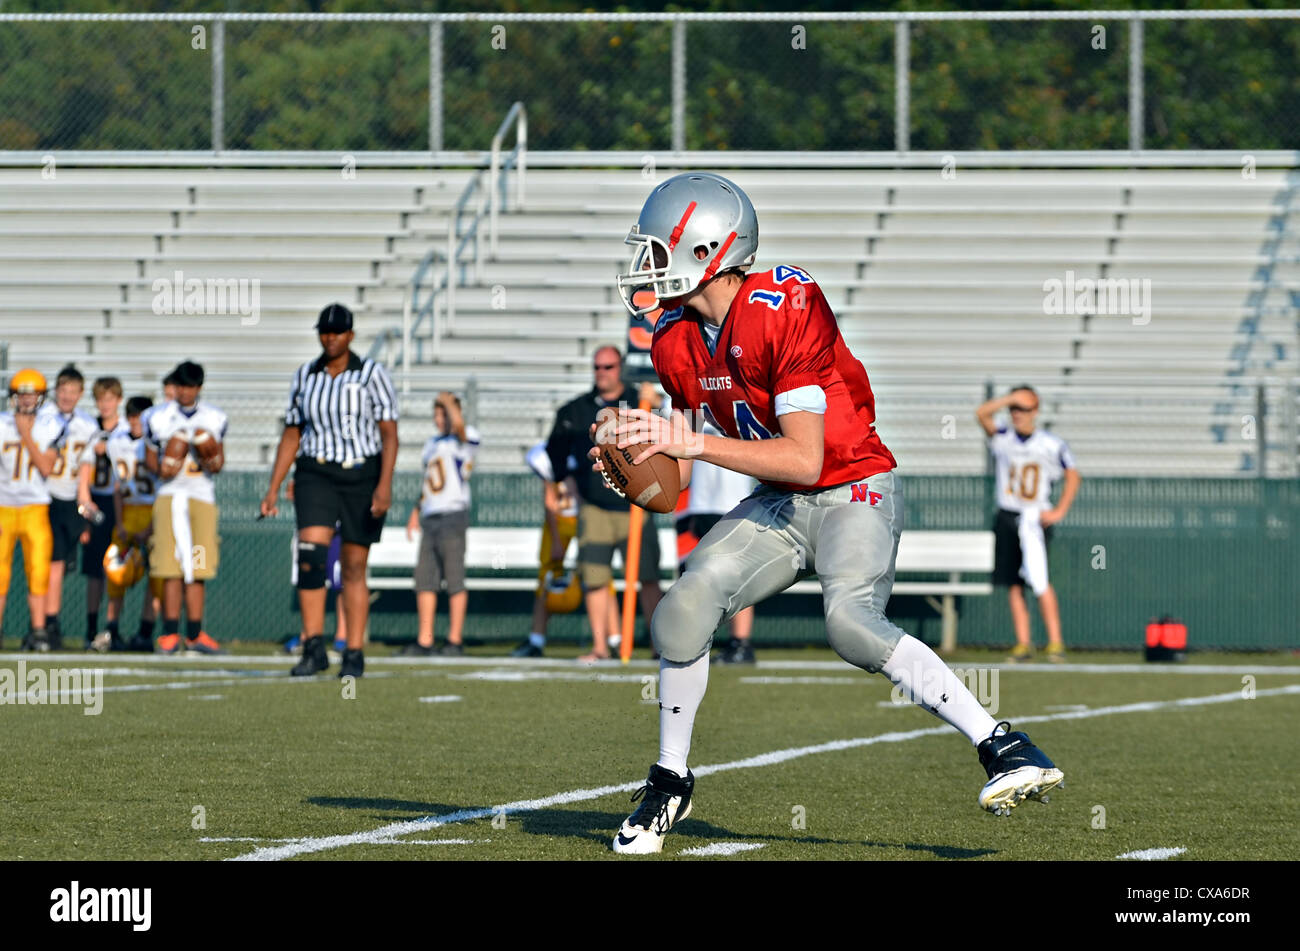 A  young quarterback ready to throw the ball during a football game, a referee closely following the action. - Stock Image